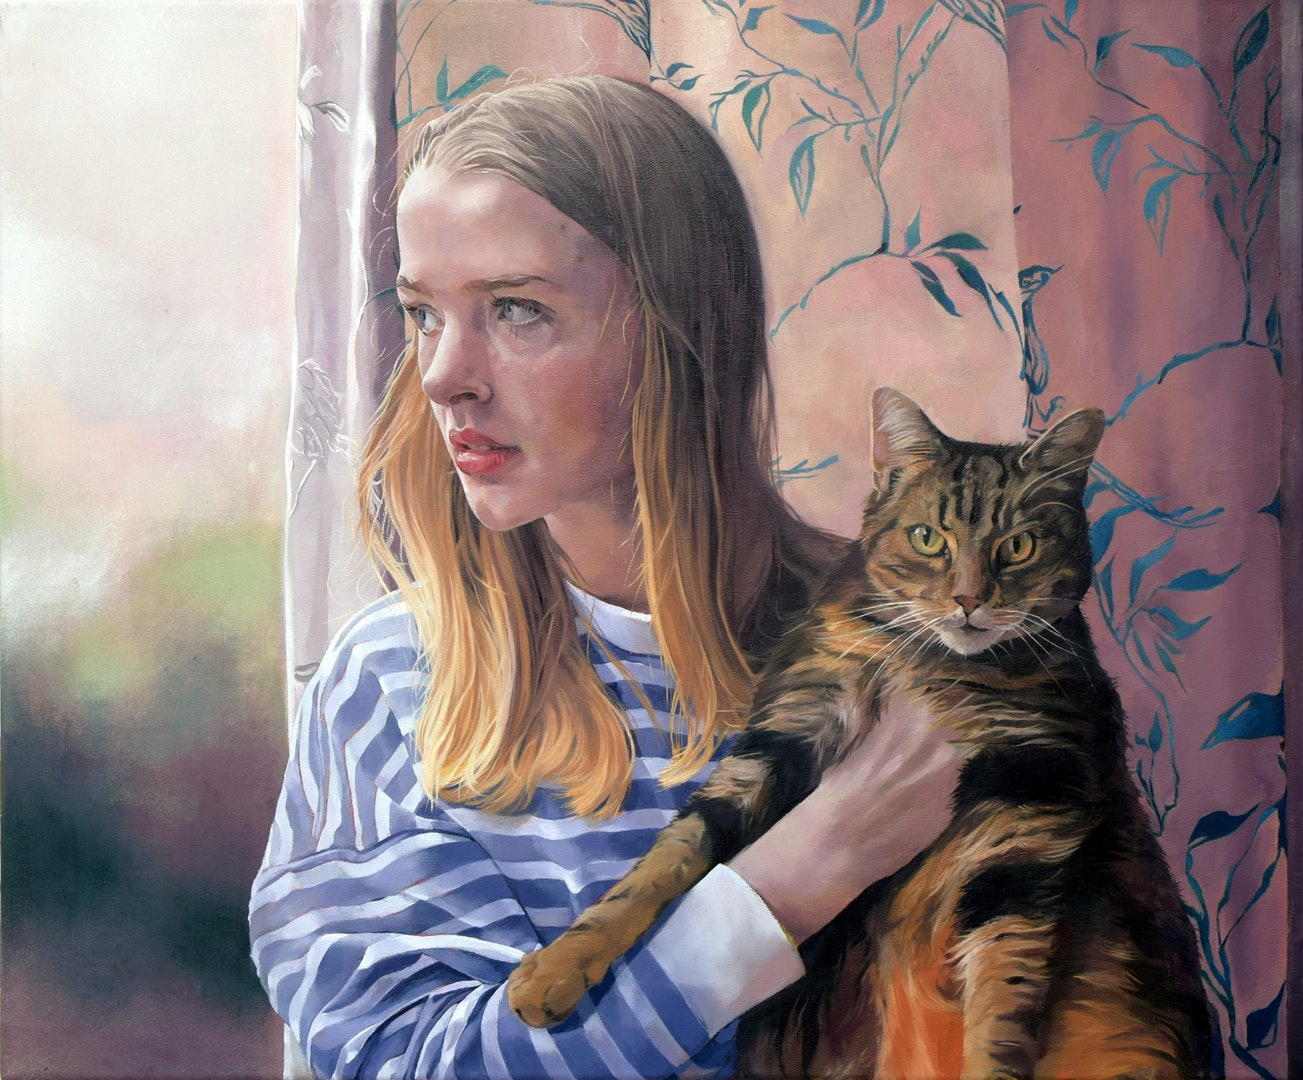 'Safe Place', Catherine Macdiarmid, Oil on canvas, 50 x 60 cm